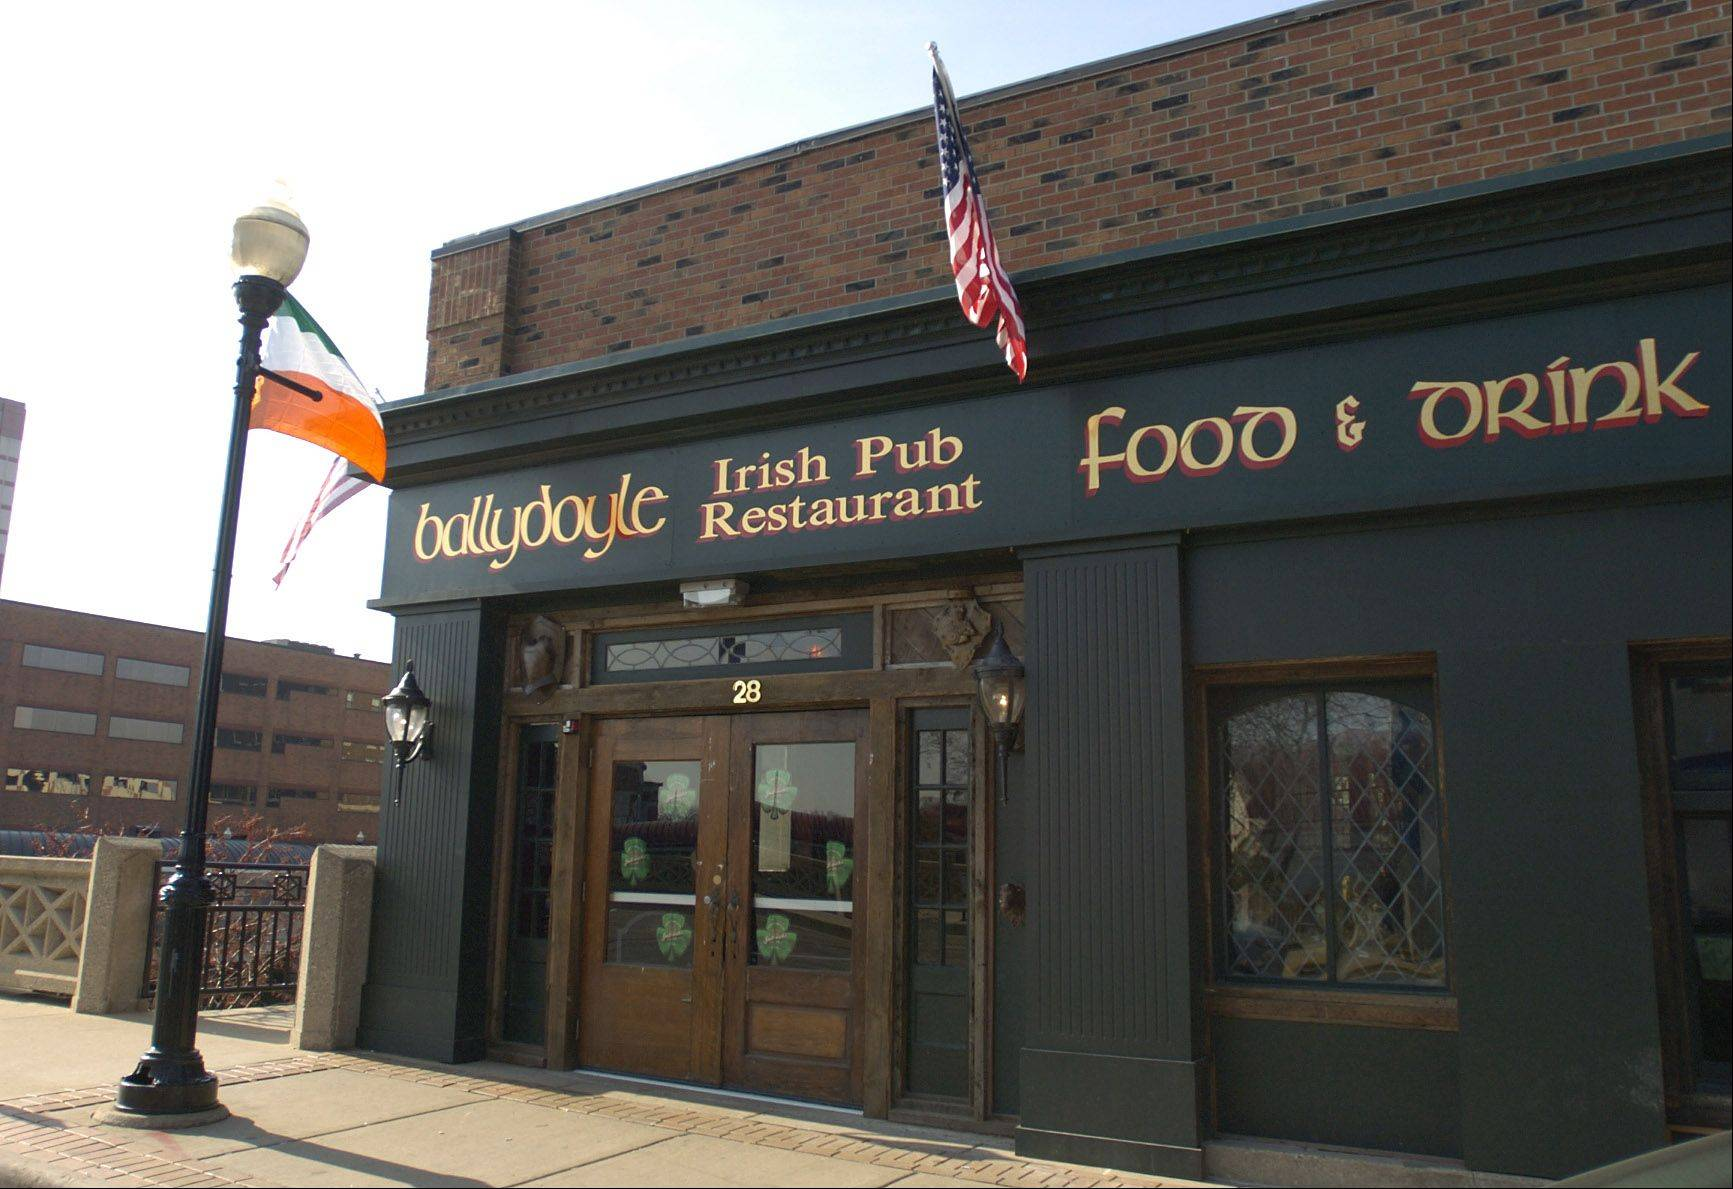 The Ballydoyle Irish Pub opened in 2009 in Aurora. Owner Phil Cullen is now said to be interested in expanding into Naperville at the former Rosebud site, 48 W. Chicago Ave.